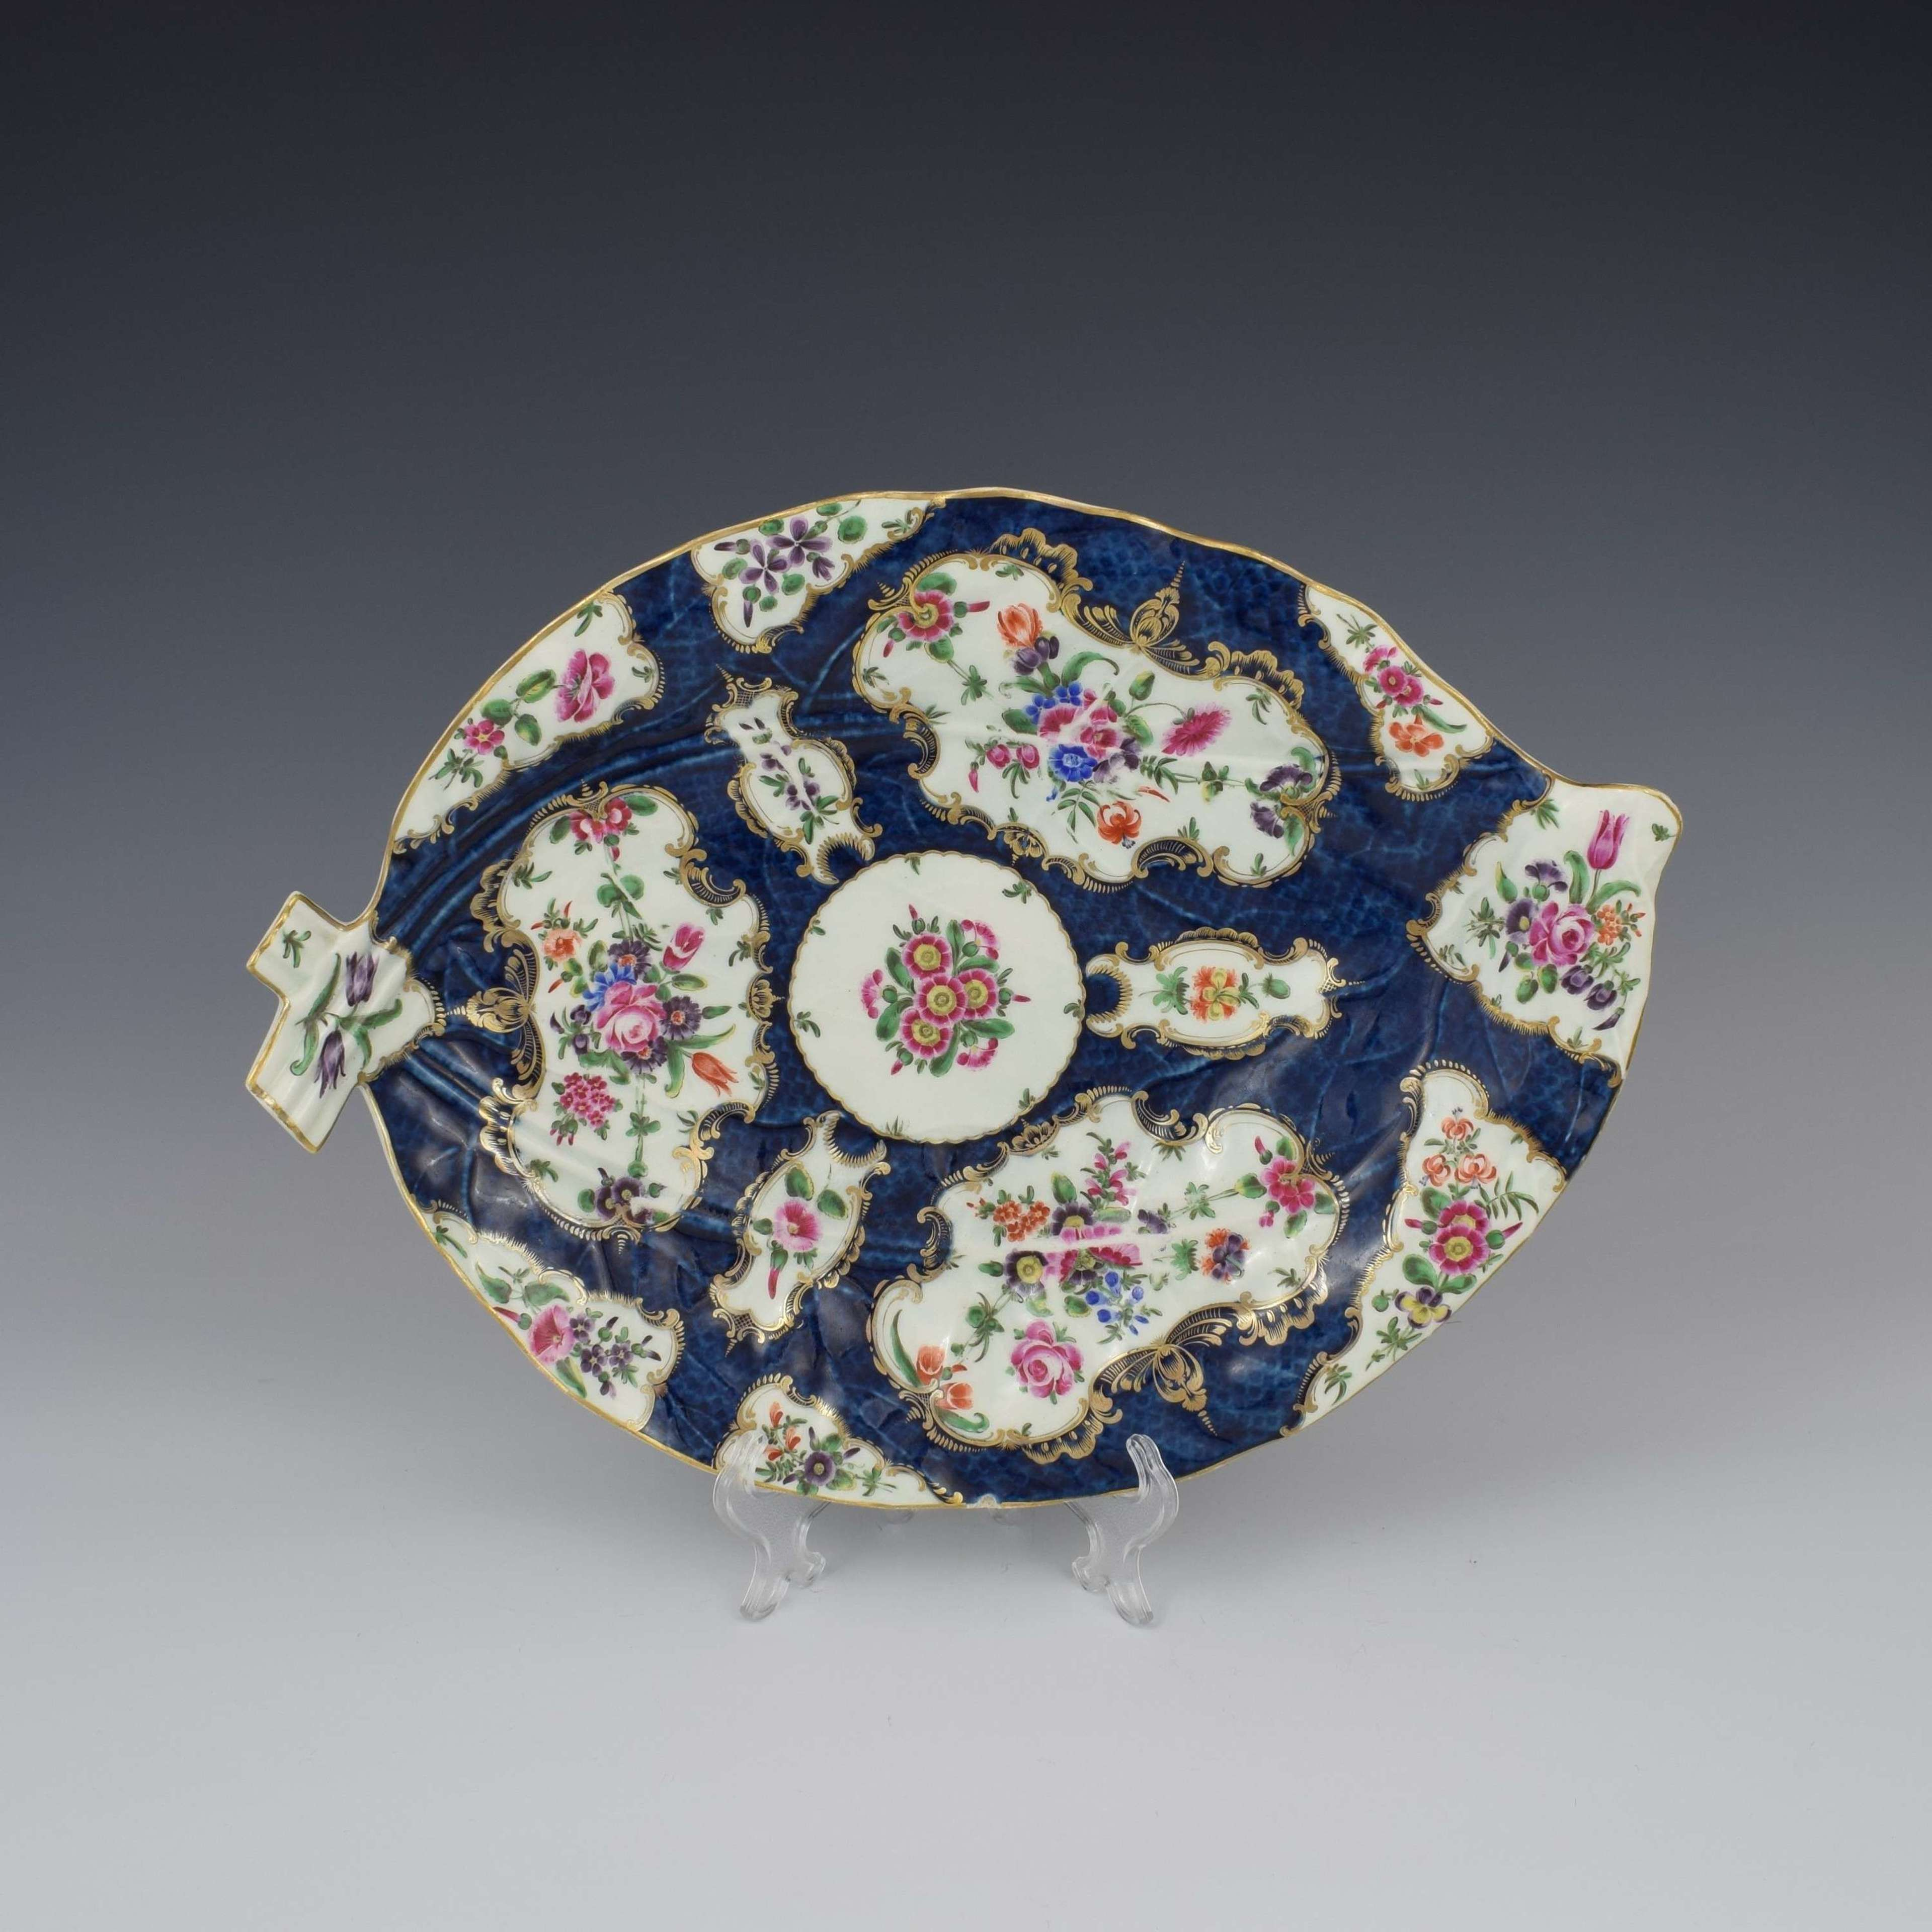 Large First Period Worcester Porcelain Blue Scale Leaf Dish c.1770